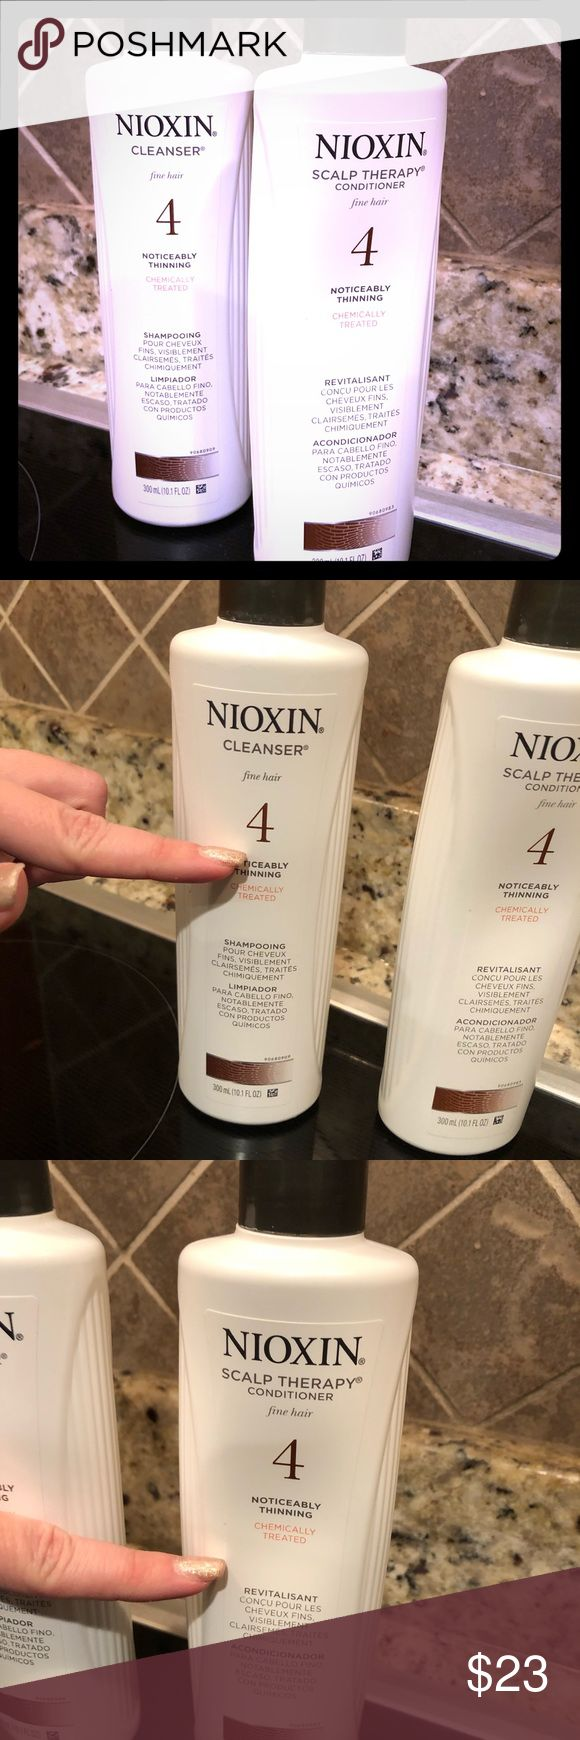 """Nioxin """"4"""" Shampoo and Conditioner Brand:  Nioxin Type:  for fine hair chemically treated """"4"""" Condition:  used 